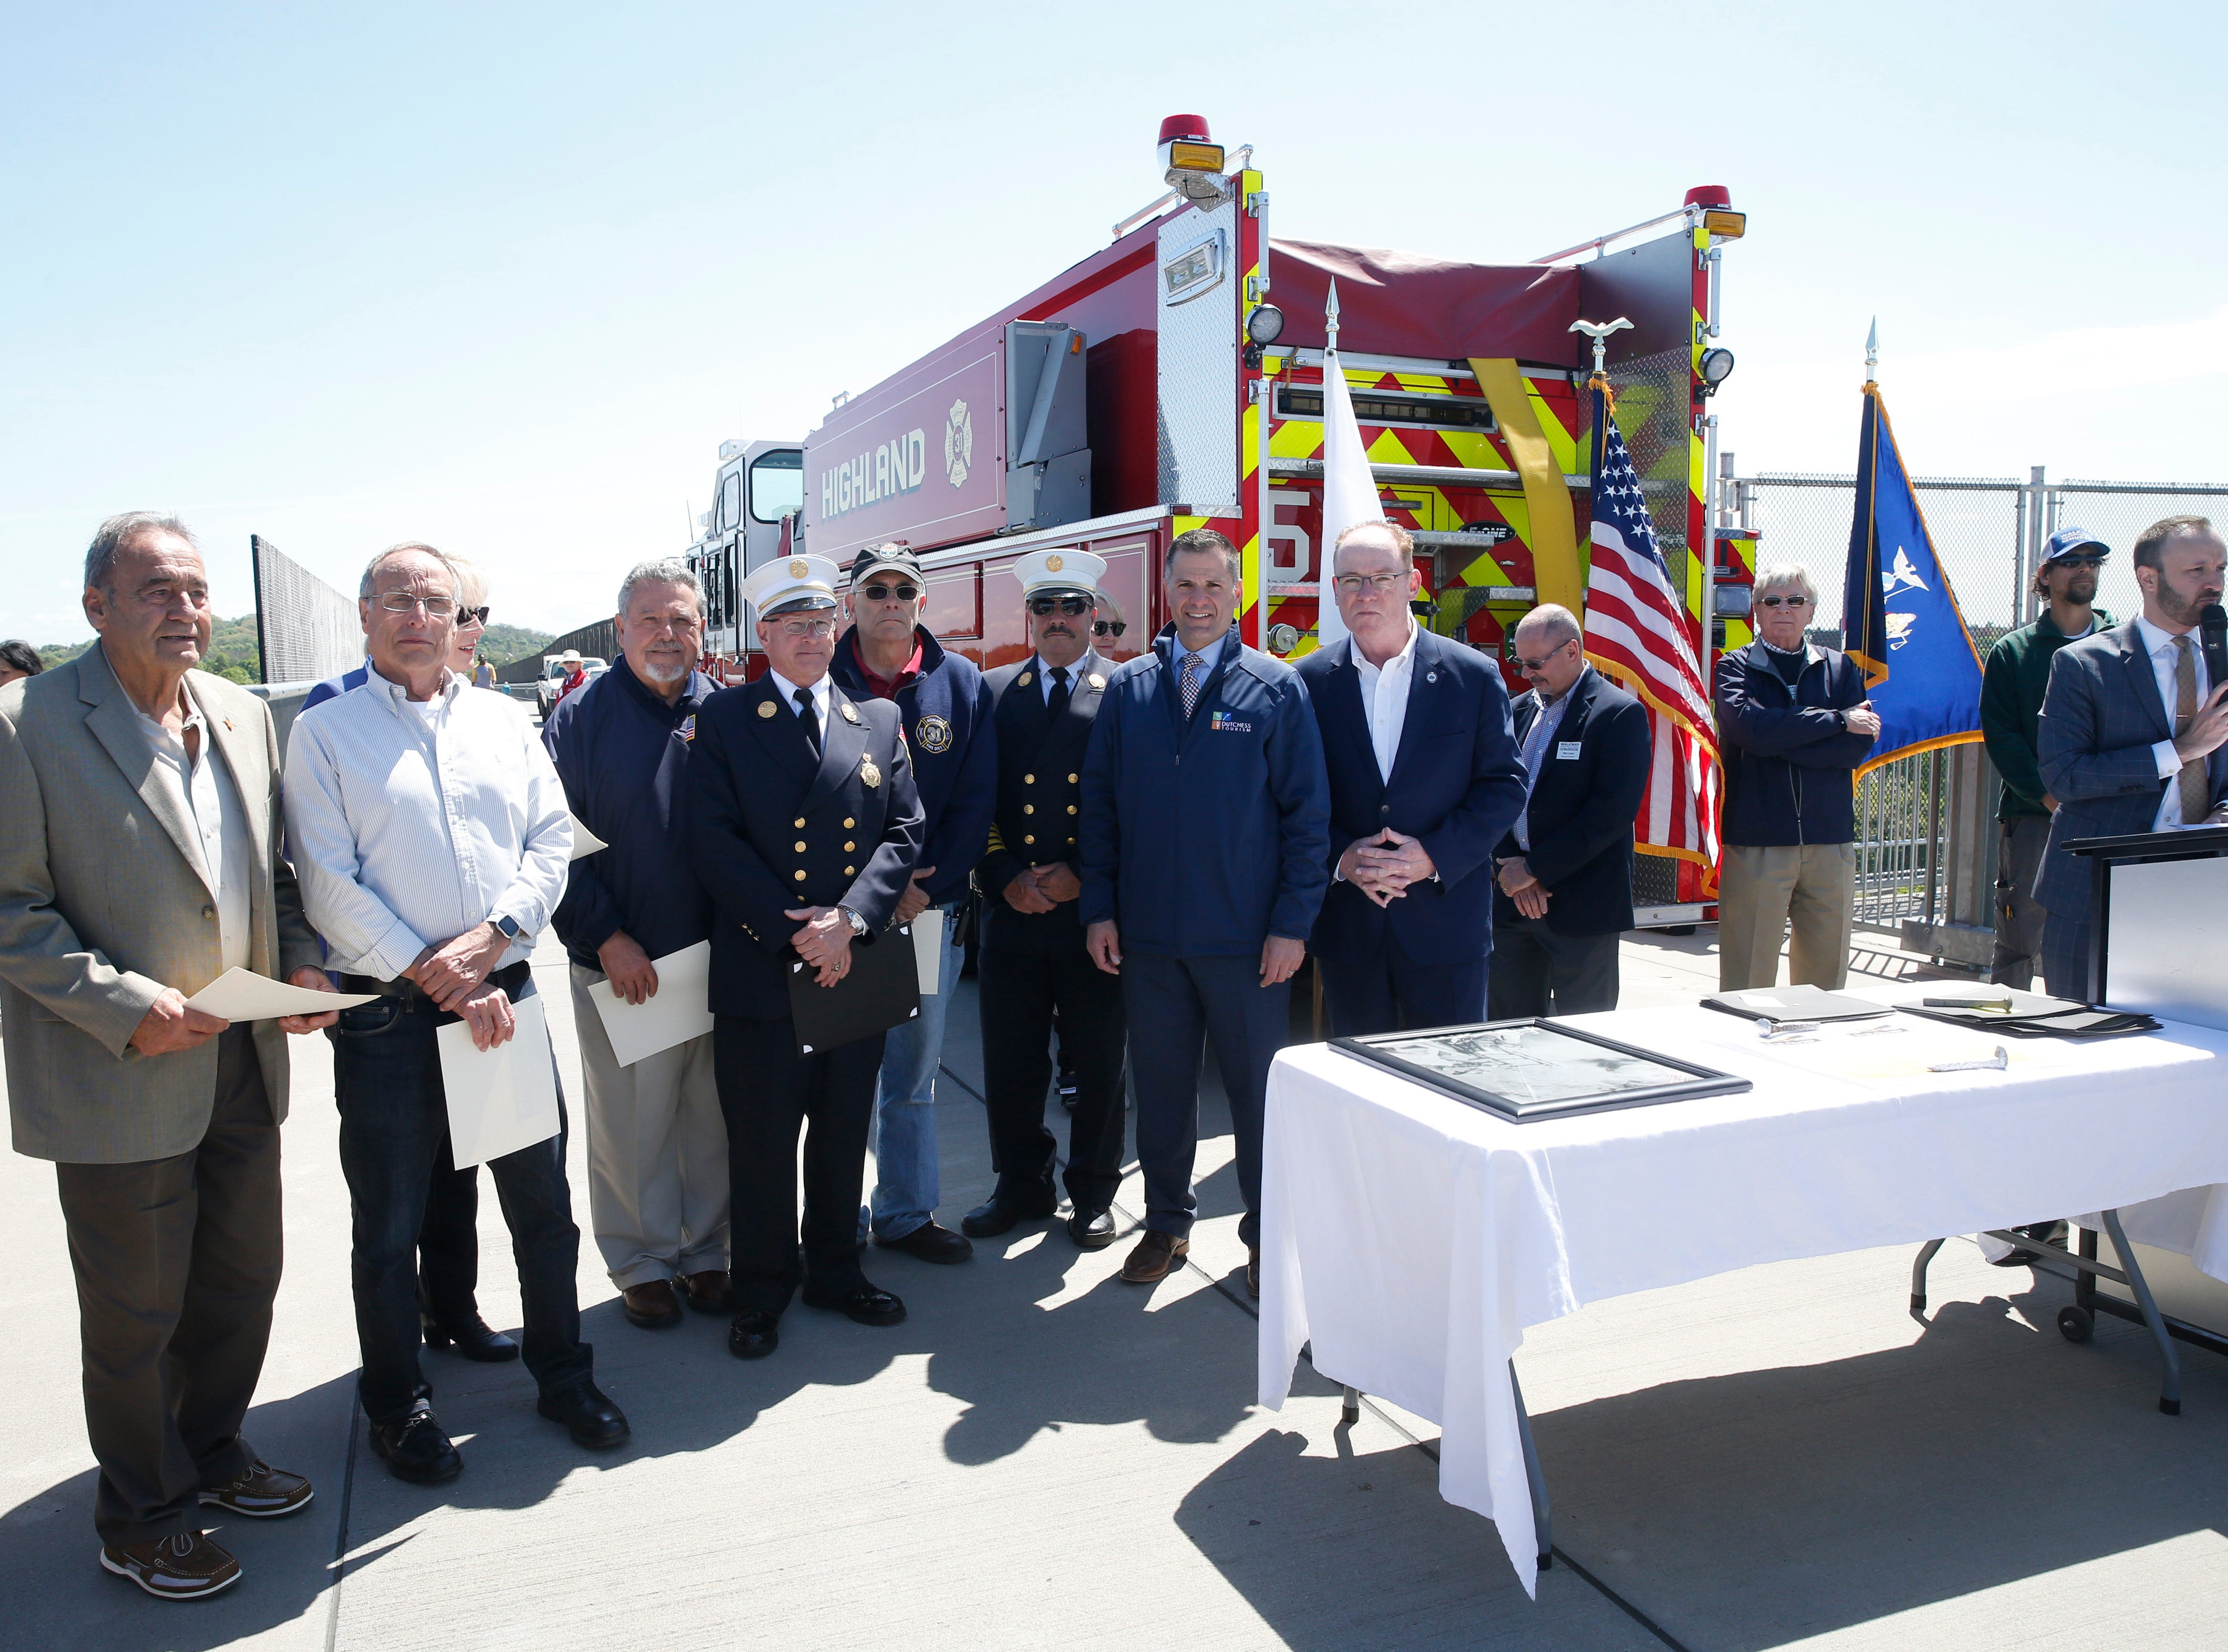 Firefighters and their representatives who were honored during Wednesday's commemoration of 45th anniversary of the fire that engulfed the railroad bridge on May 8, 2019. Many of the men in the photo fought the fire in 1974 and were given certificates to commemorate their work.